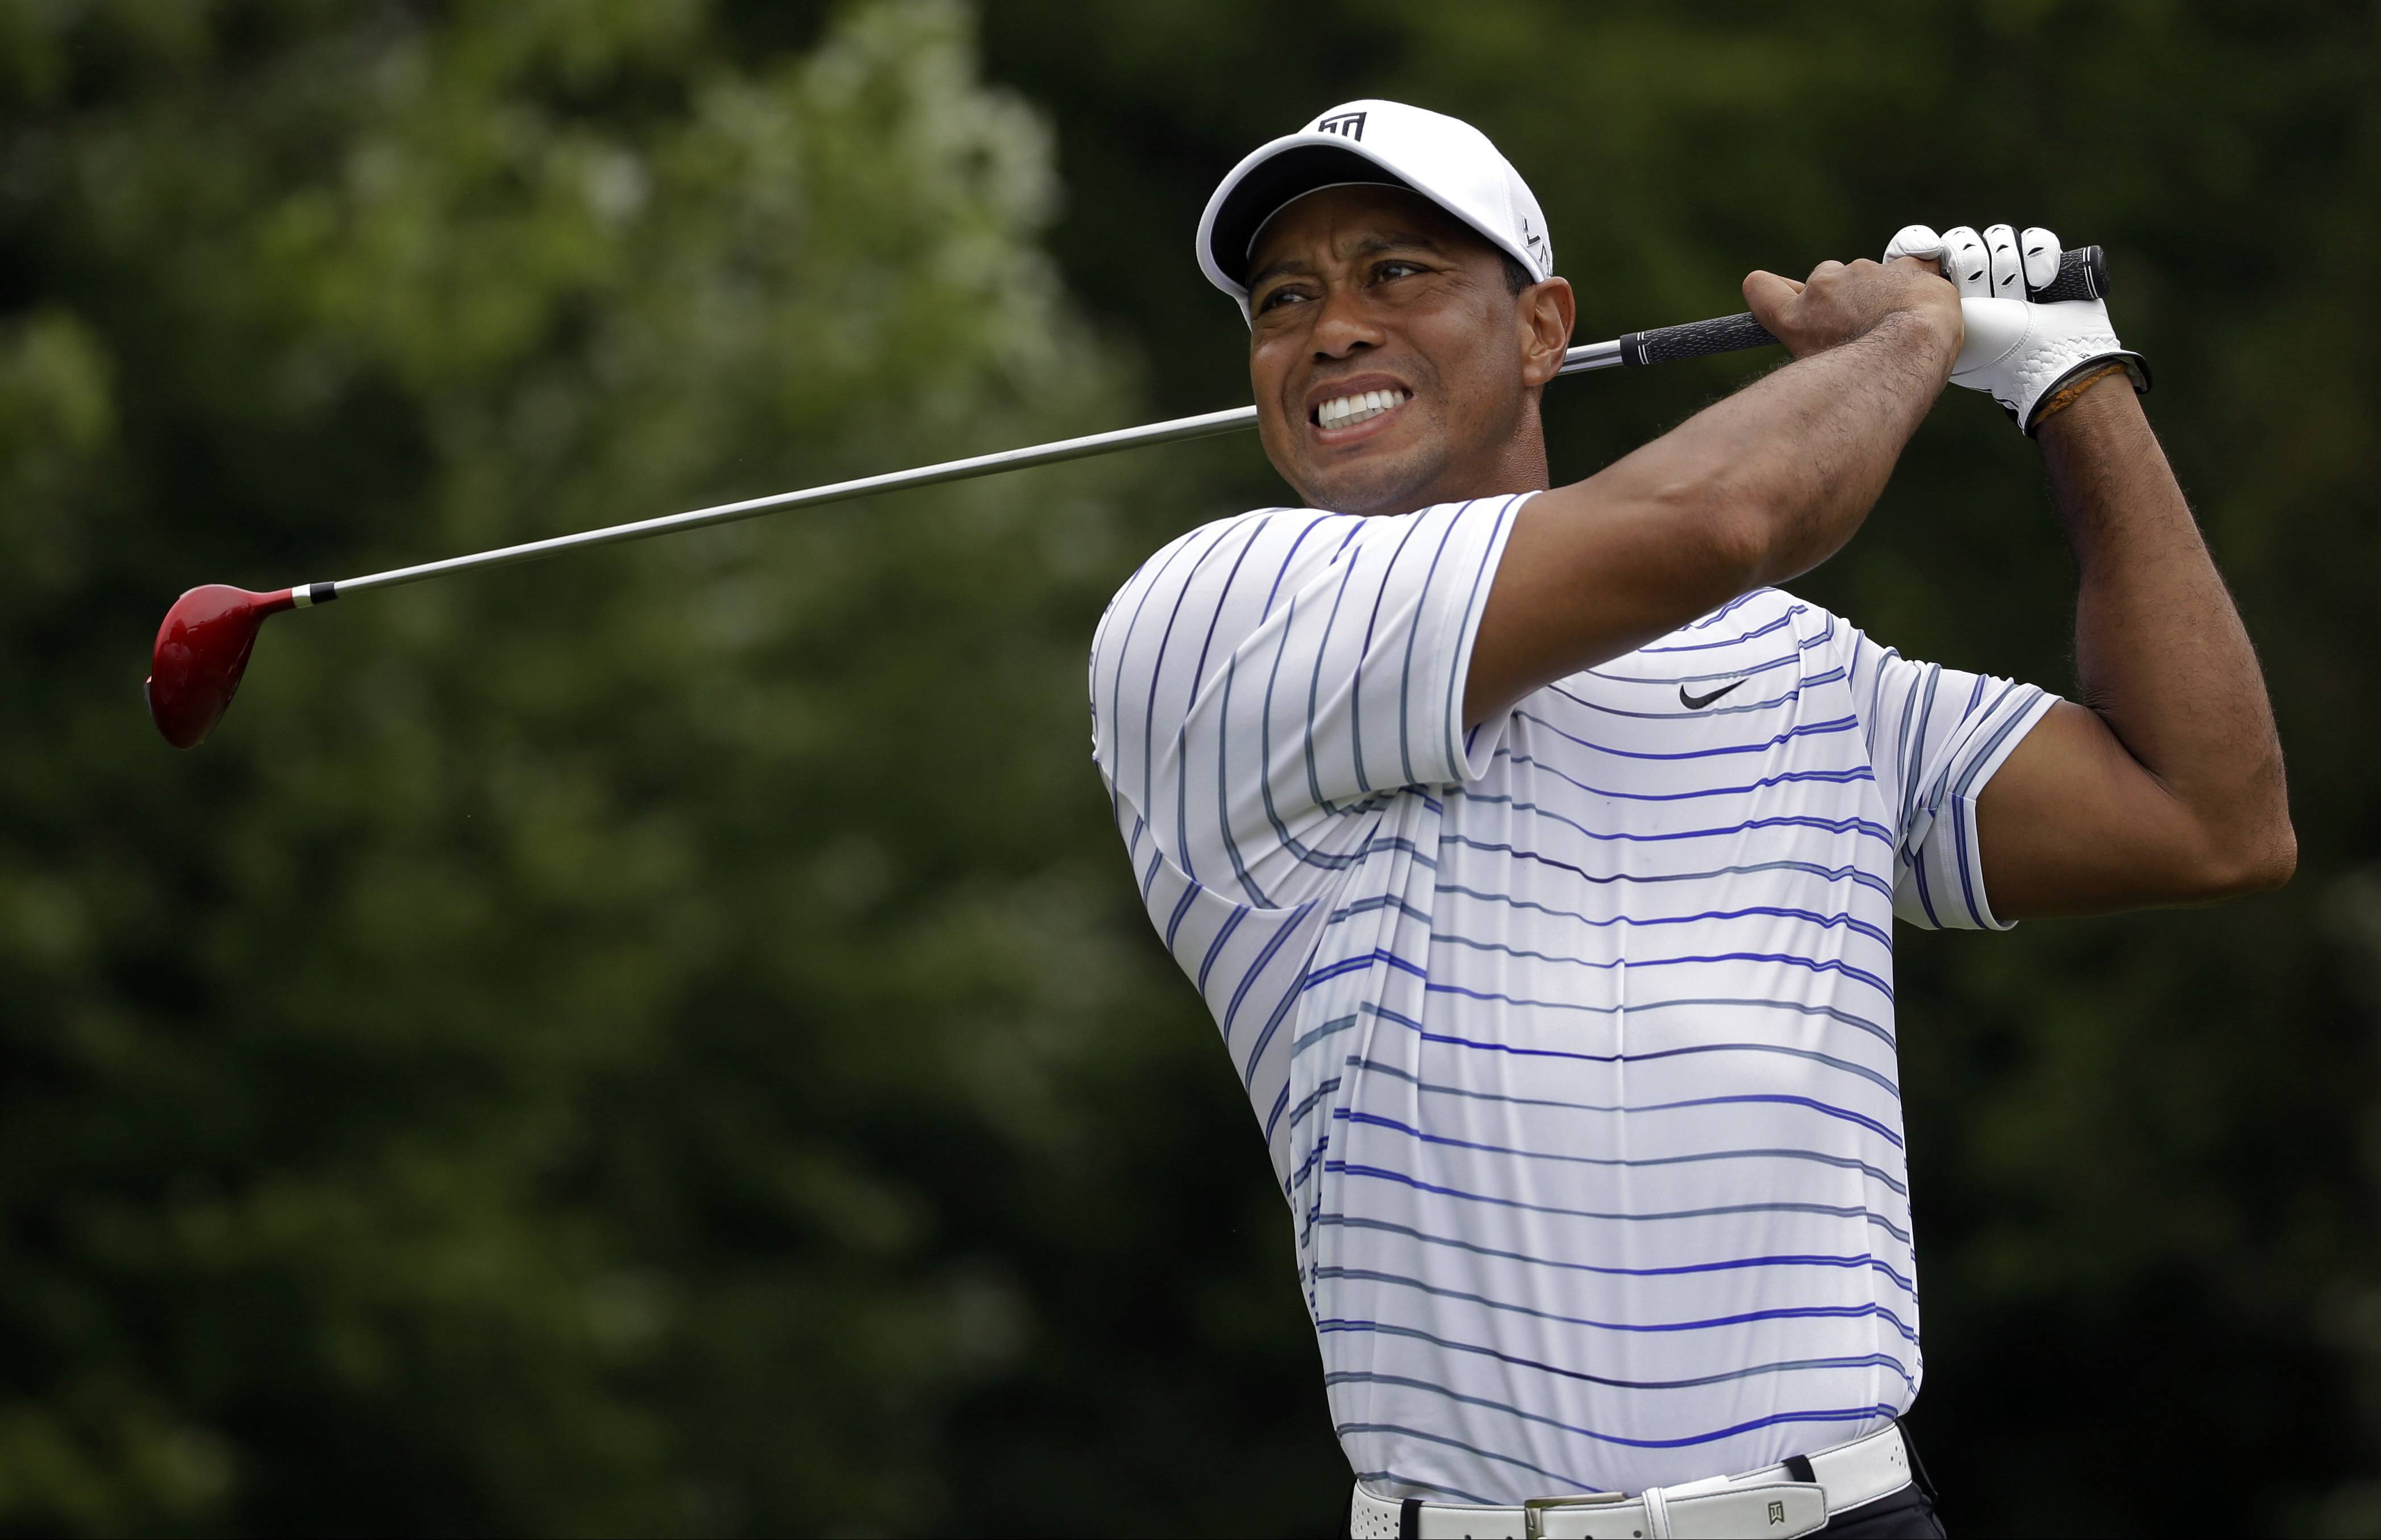 Tiger Woods winces after tee shot on the sixth hole during the second round of the PGA Championship golf tournament at Valhalla Golf Club on Friday, Aug. 8, 2014, in Louisville, Ky.